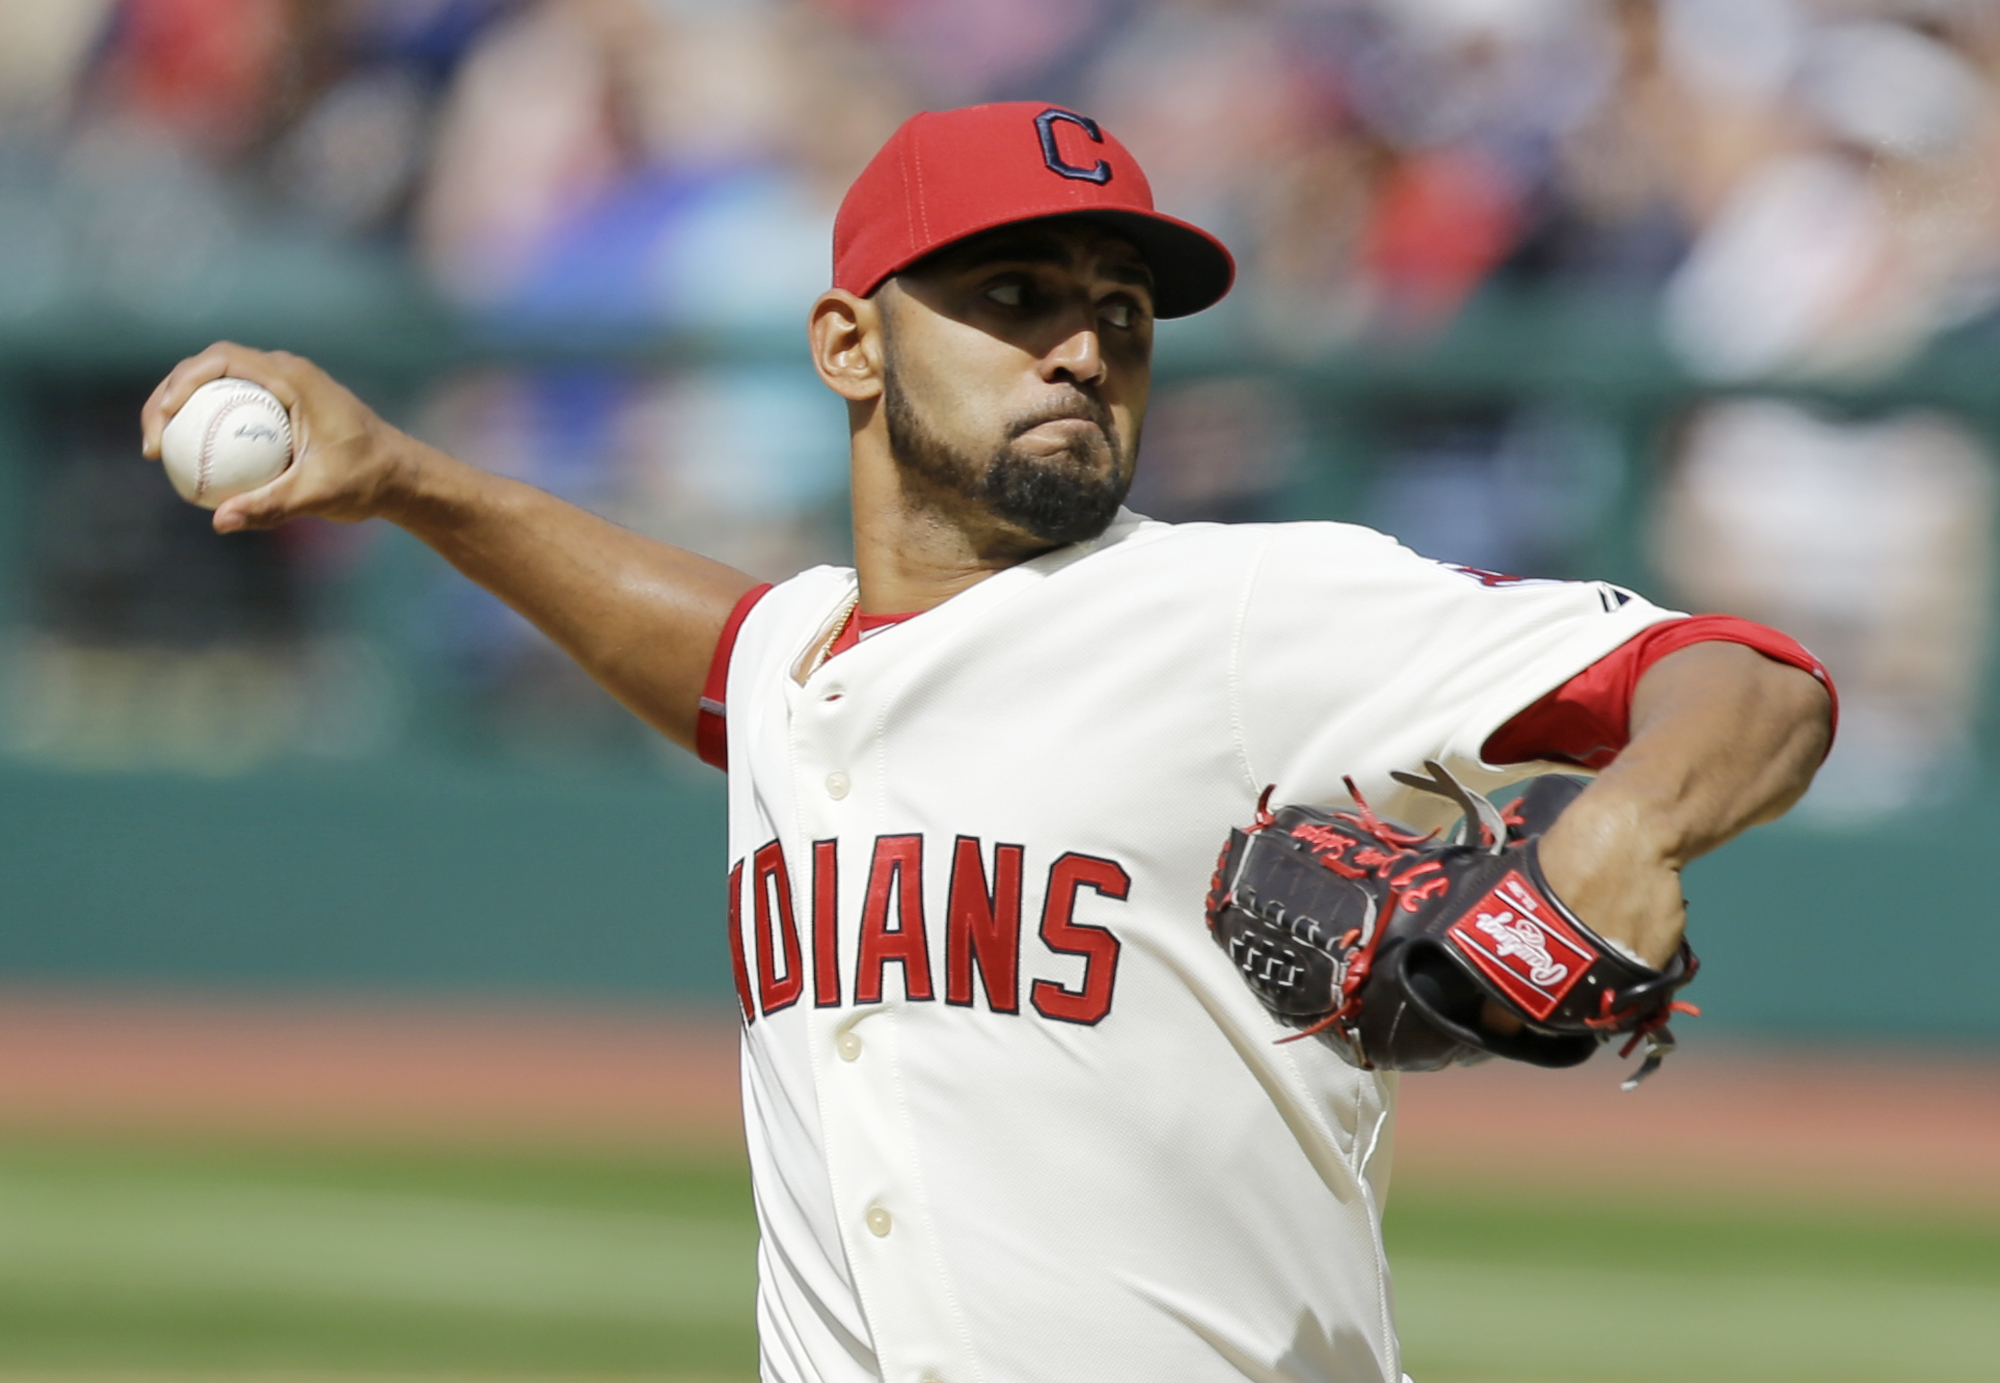 Cleveland Indians starting pitcher Danny Salazar delivers in the first inning of a baseball game against the Baltimore Orioles, Saturday, June 6, 2015, in Cleveland. (AP Photo/Tony Dejak)